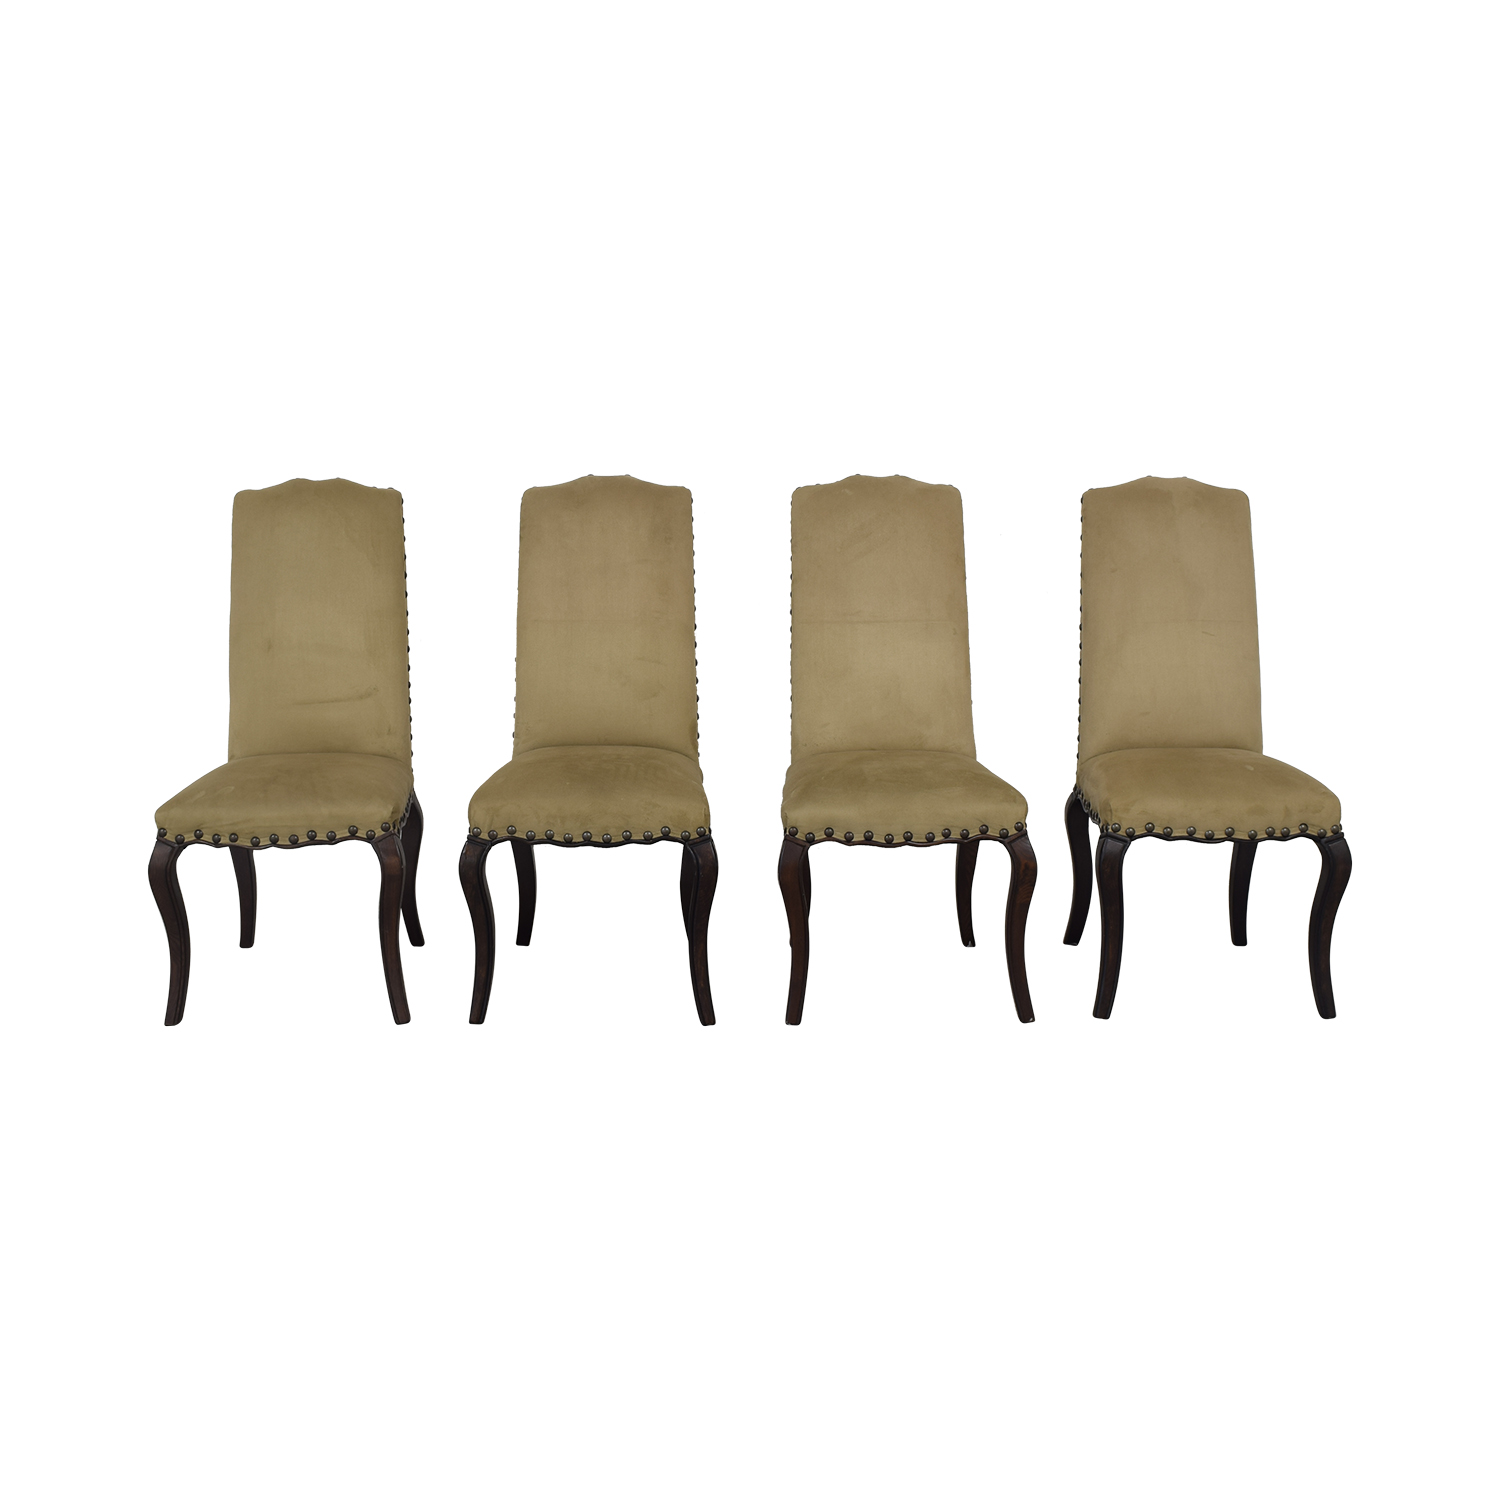 Pottery Barn Pottery Barn Calais Dining Chairs on sale